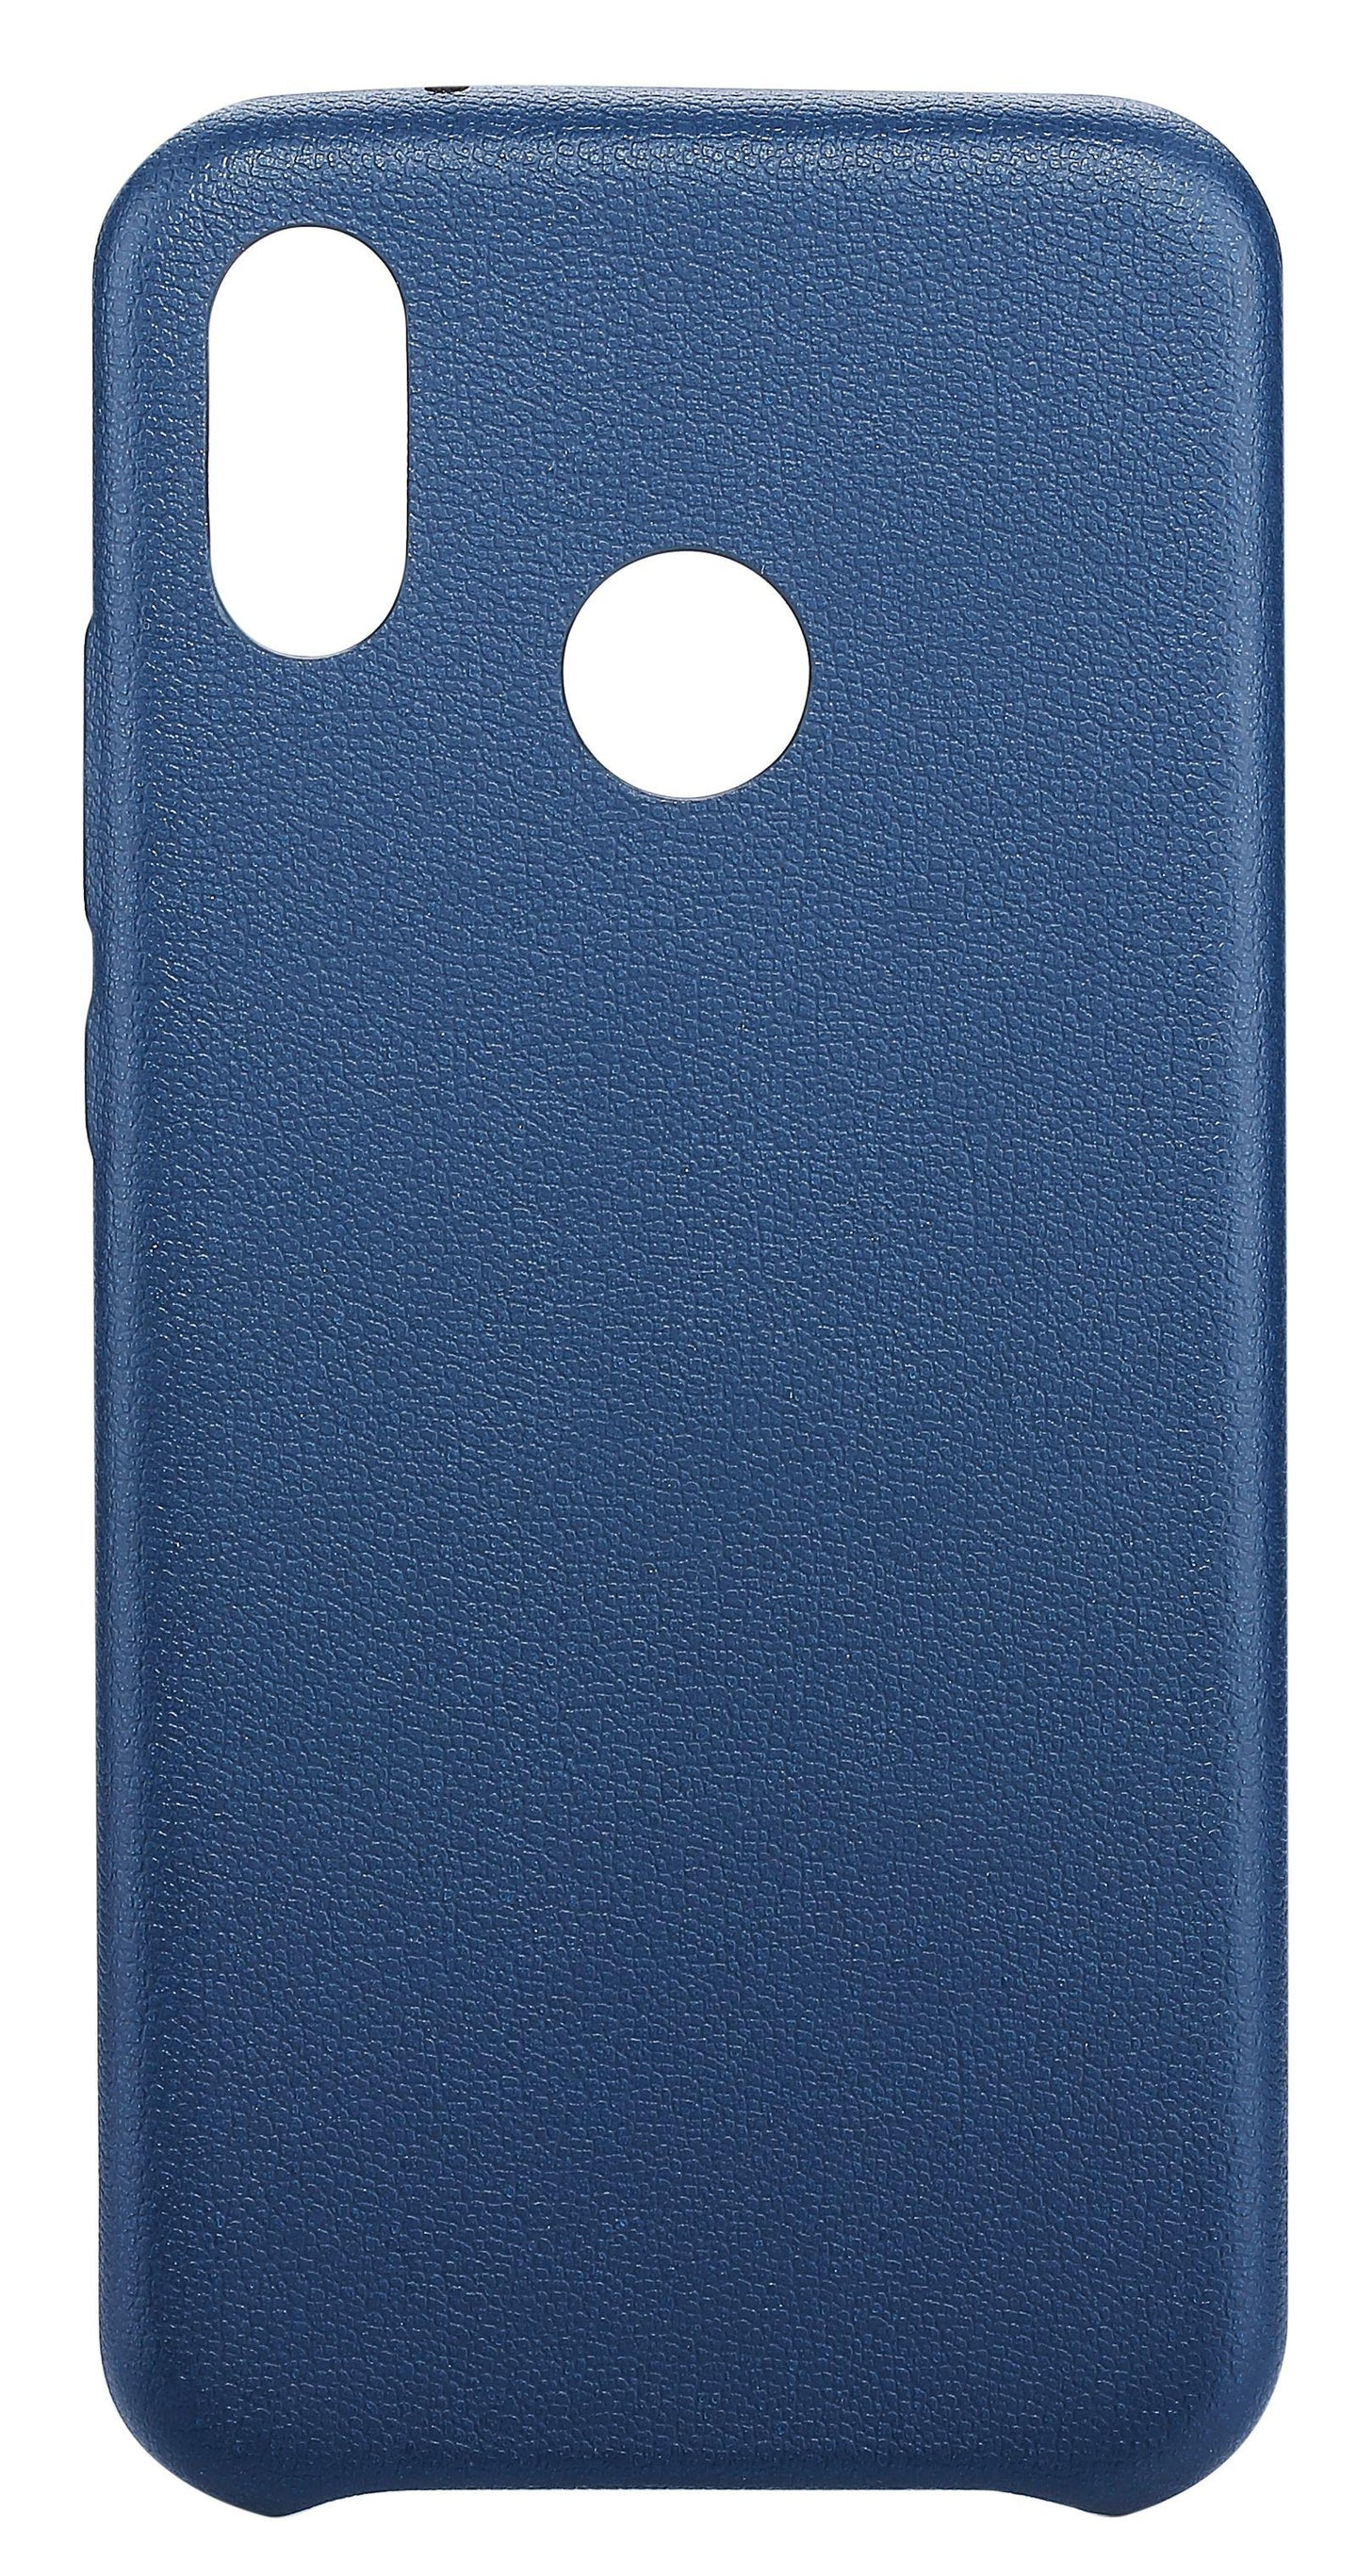 Blu Element Velvet Touch Case Navy Blue for Huawei P20 Lite